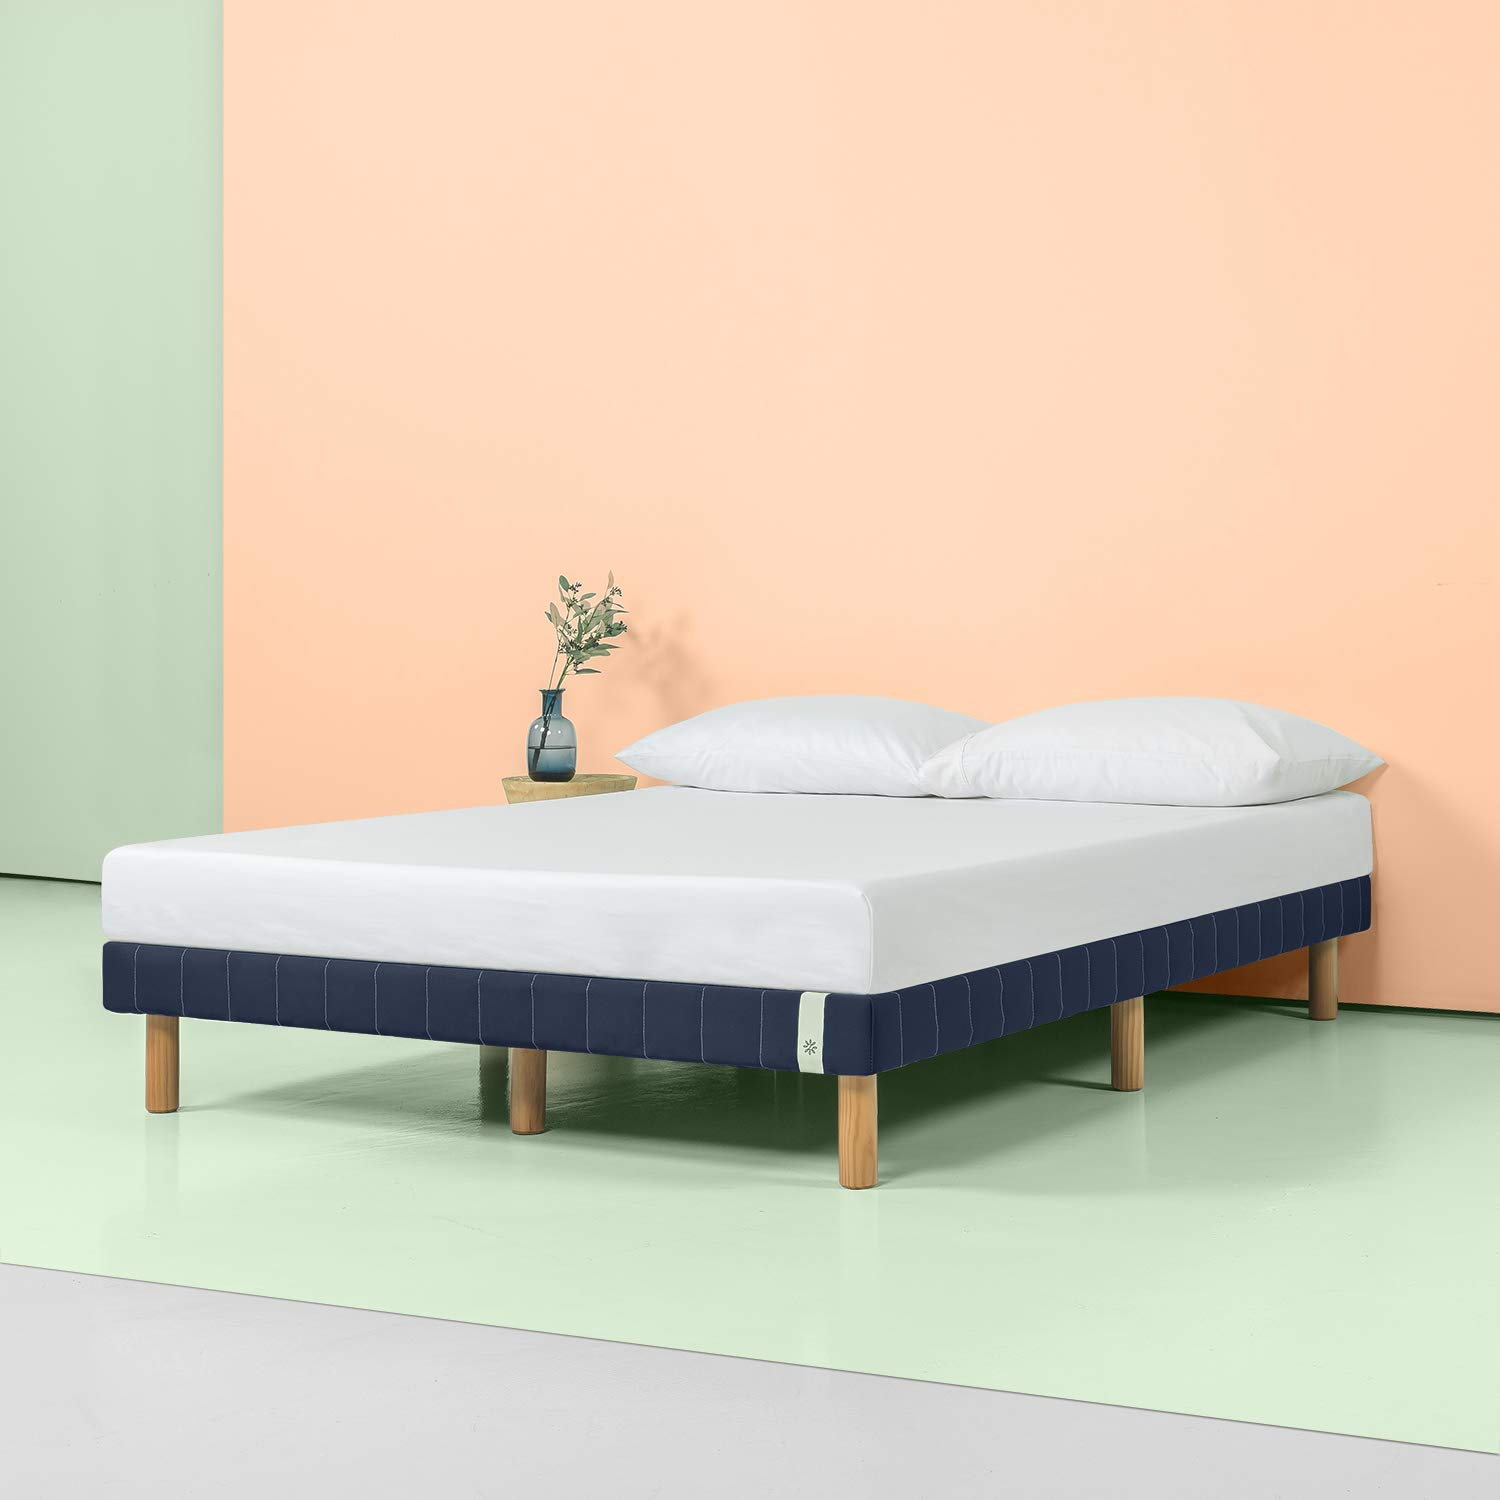 Zinus 11 Inch Quick Snap Standing Mattress Foundation/Low profile Platform Bed/No Box Spring needed, Navy, Cal King